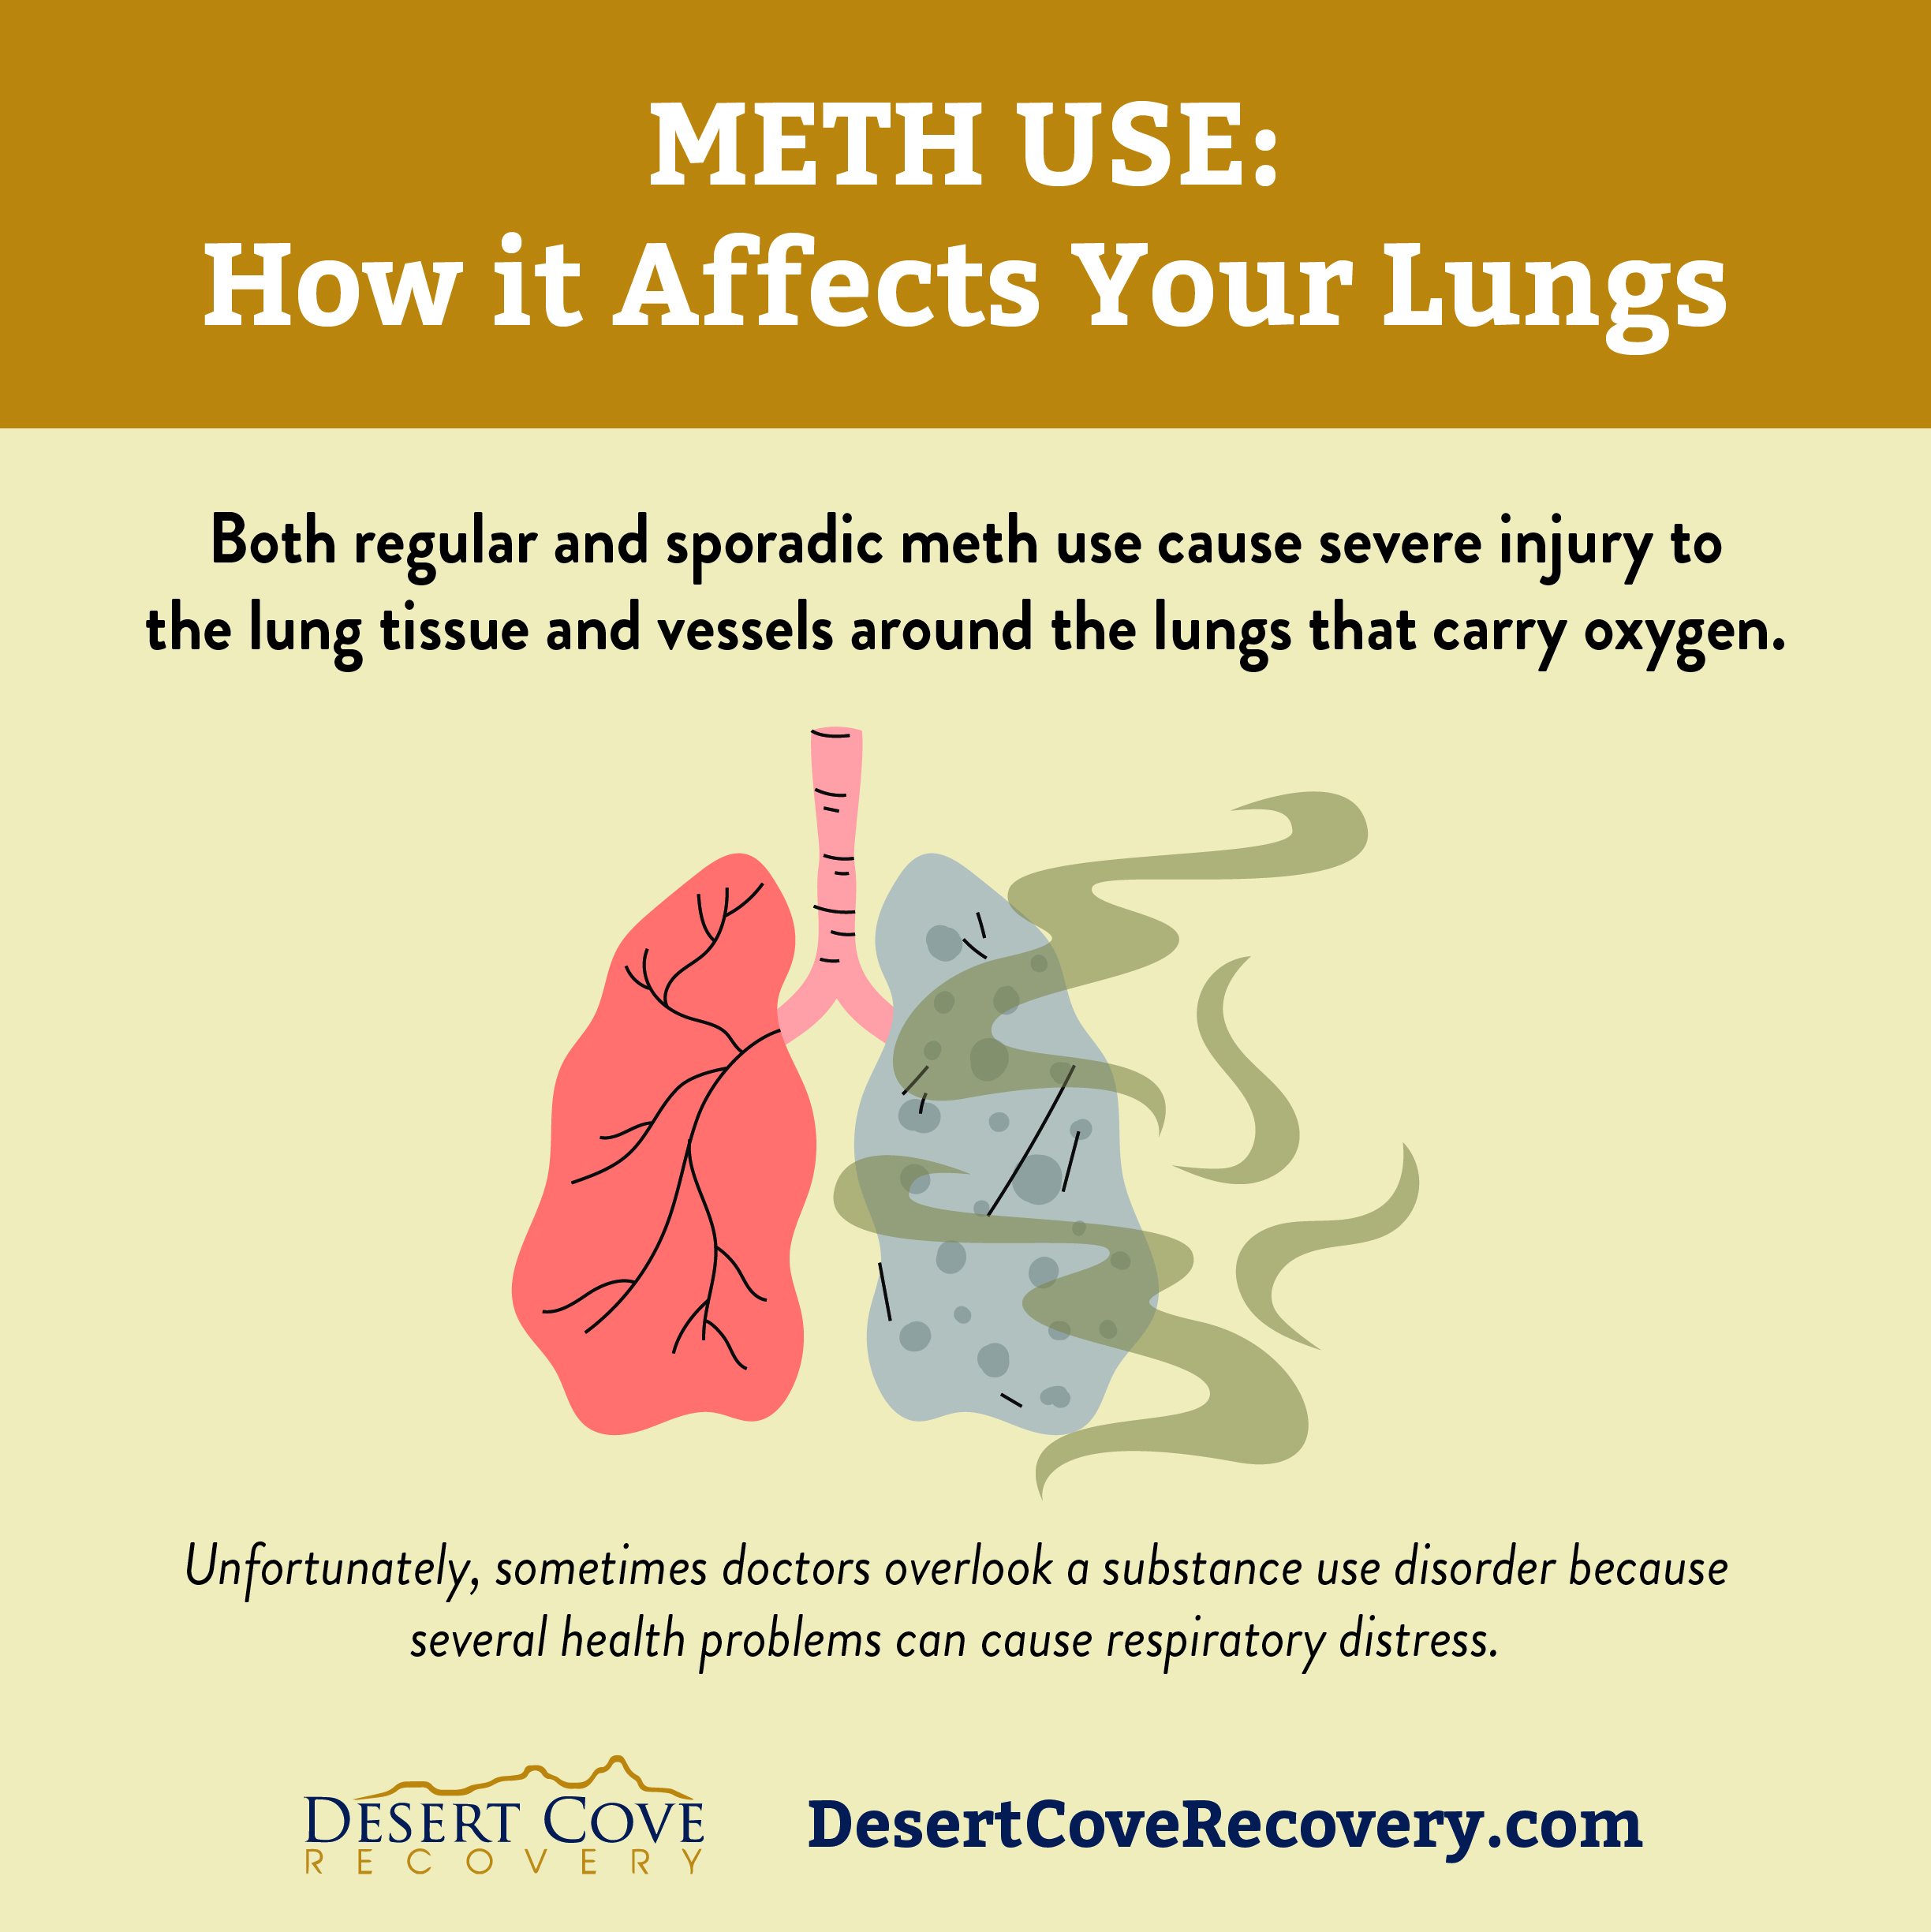 How Meth Use Affects Your LUngs